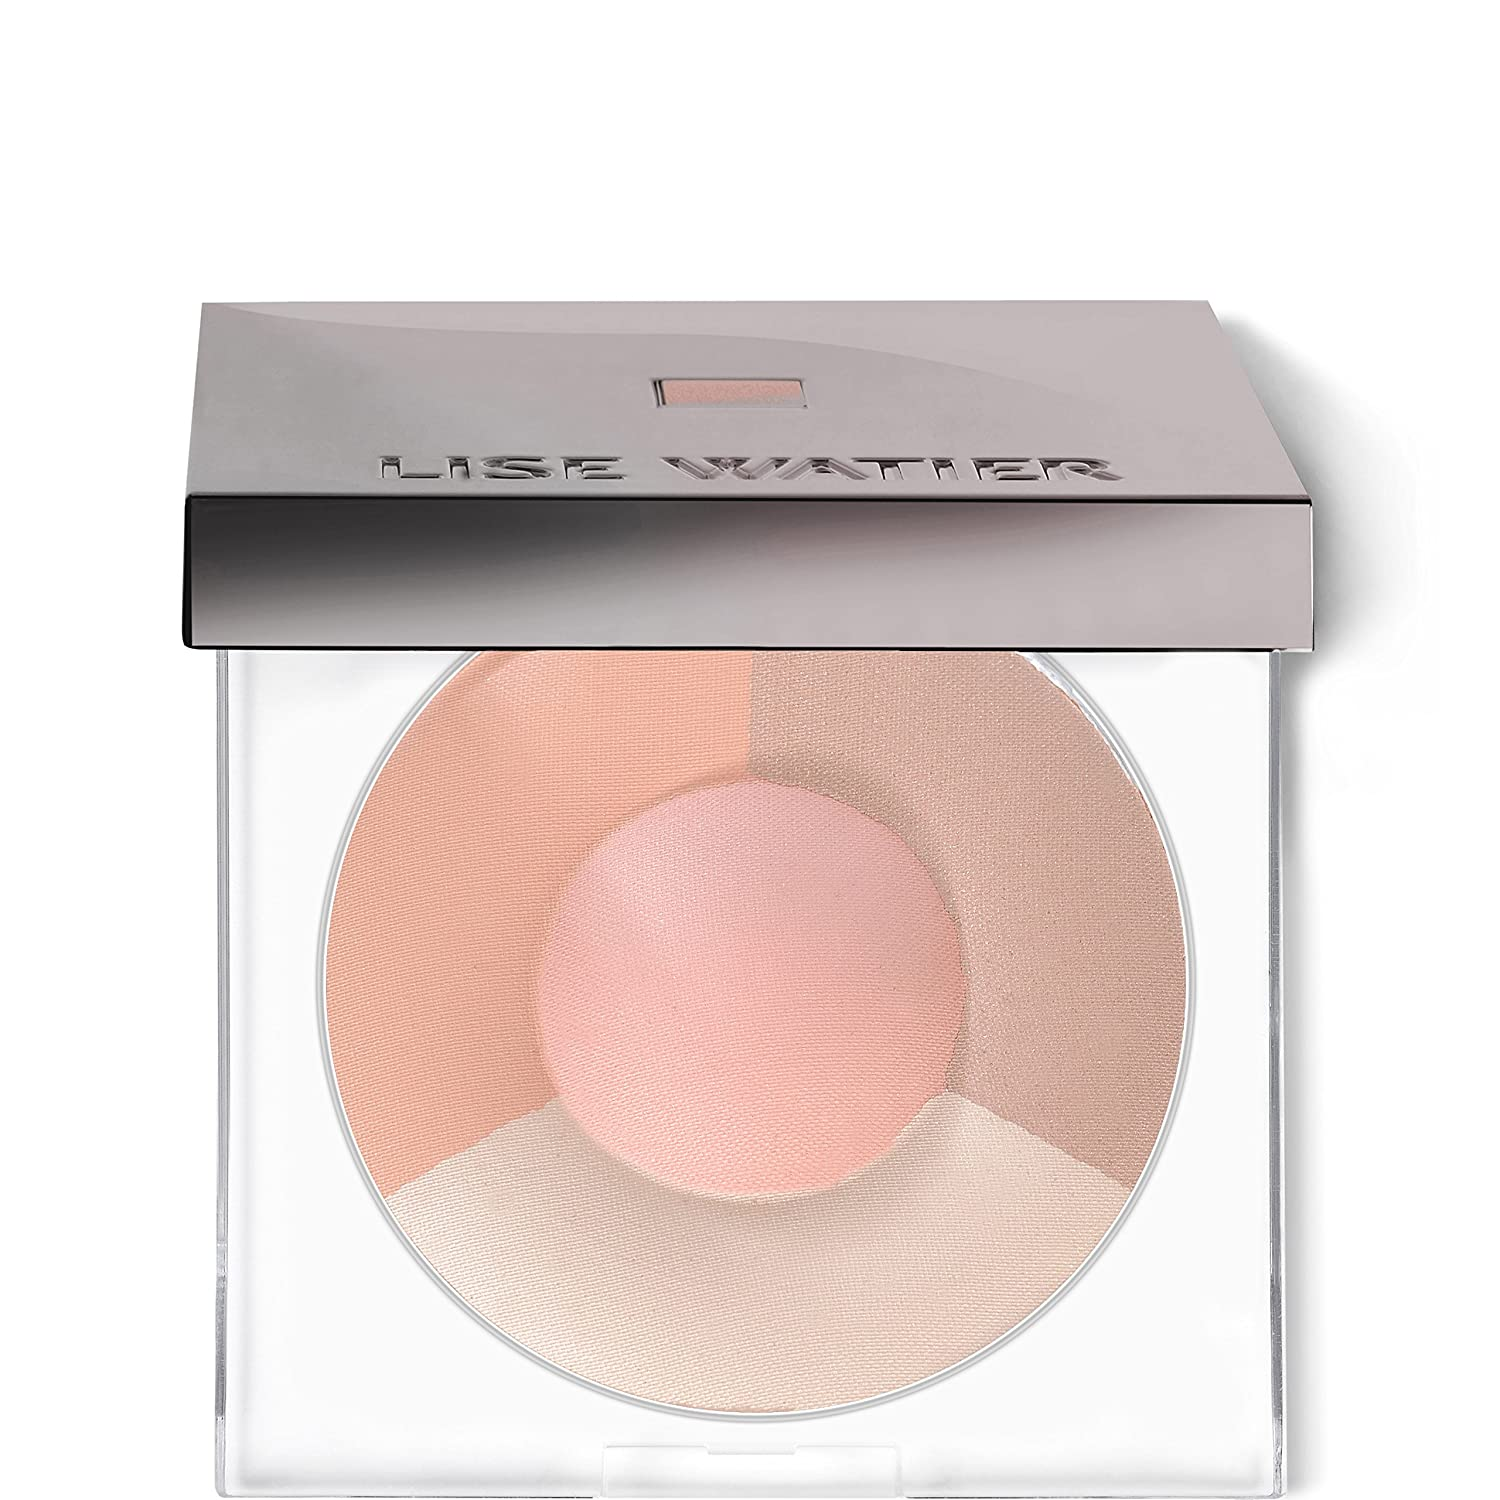 Lise Watier Satellite Bronzing Powder - Radiance Groupe Marcelle Inc.